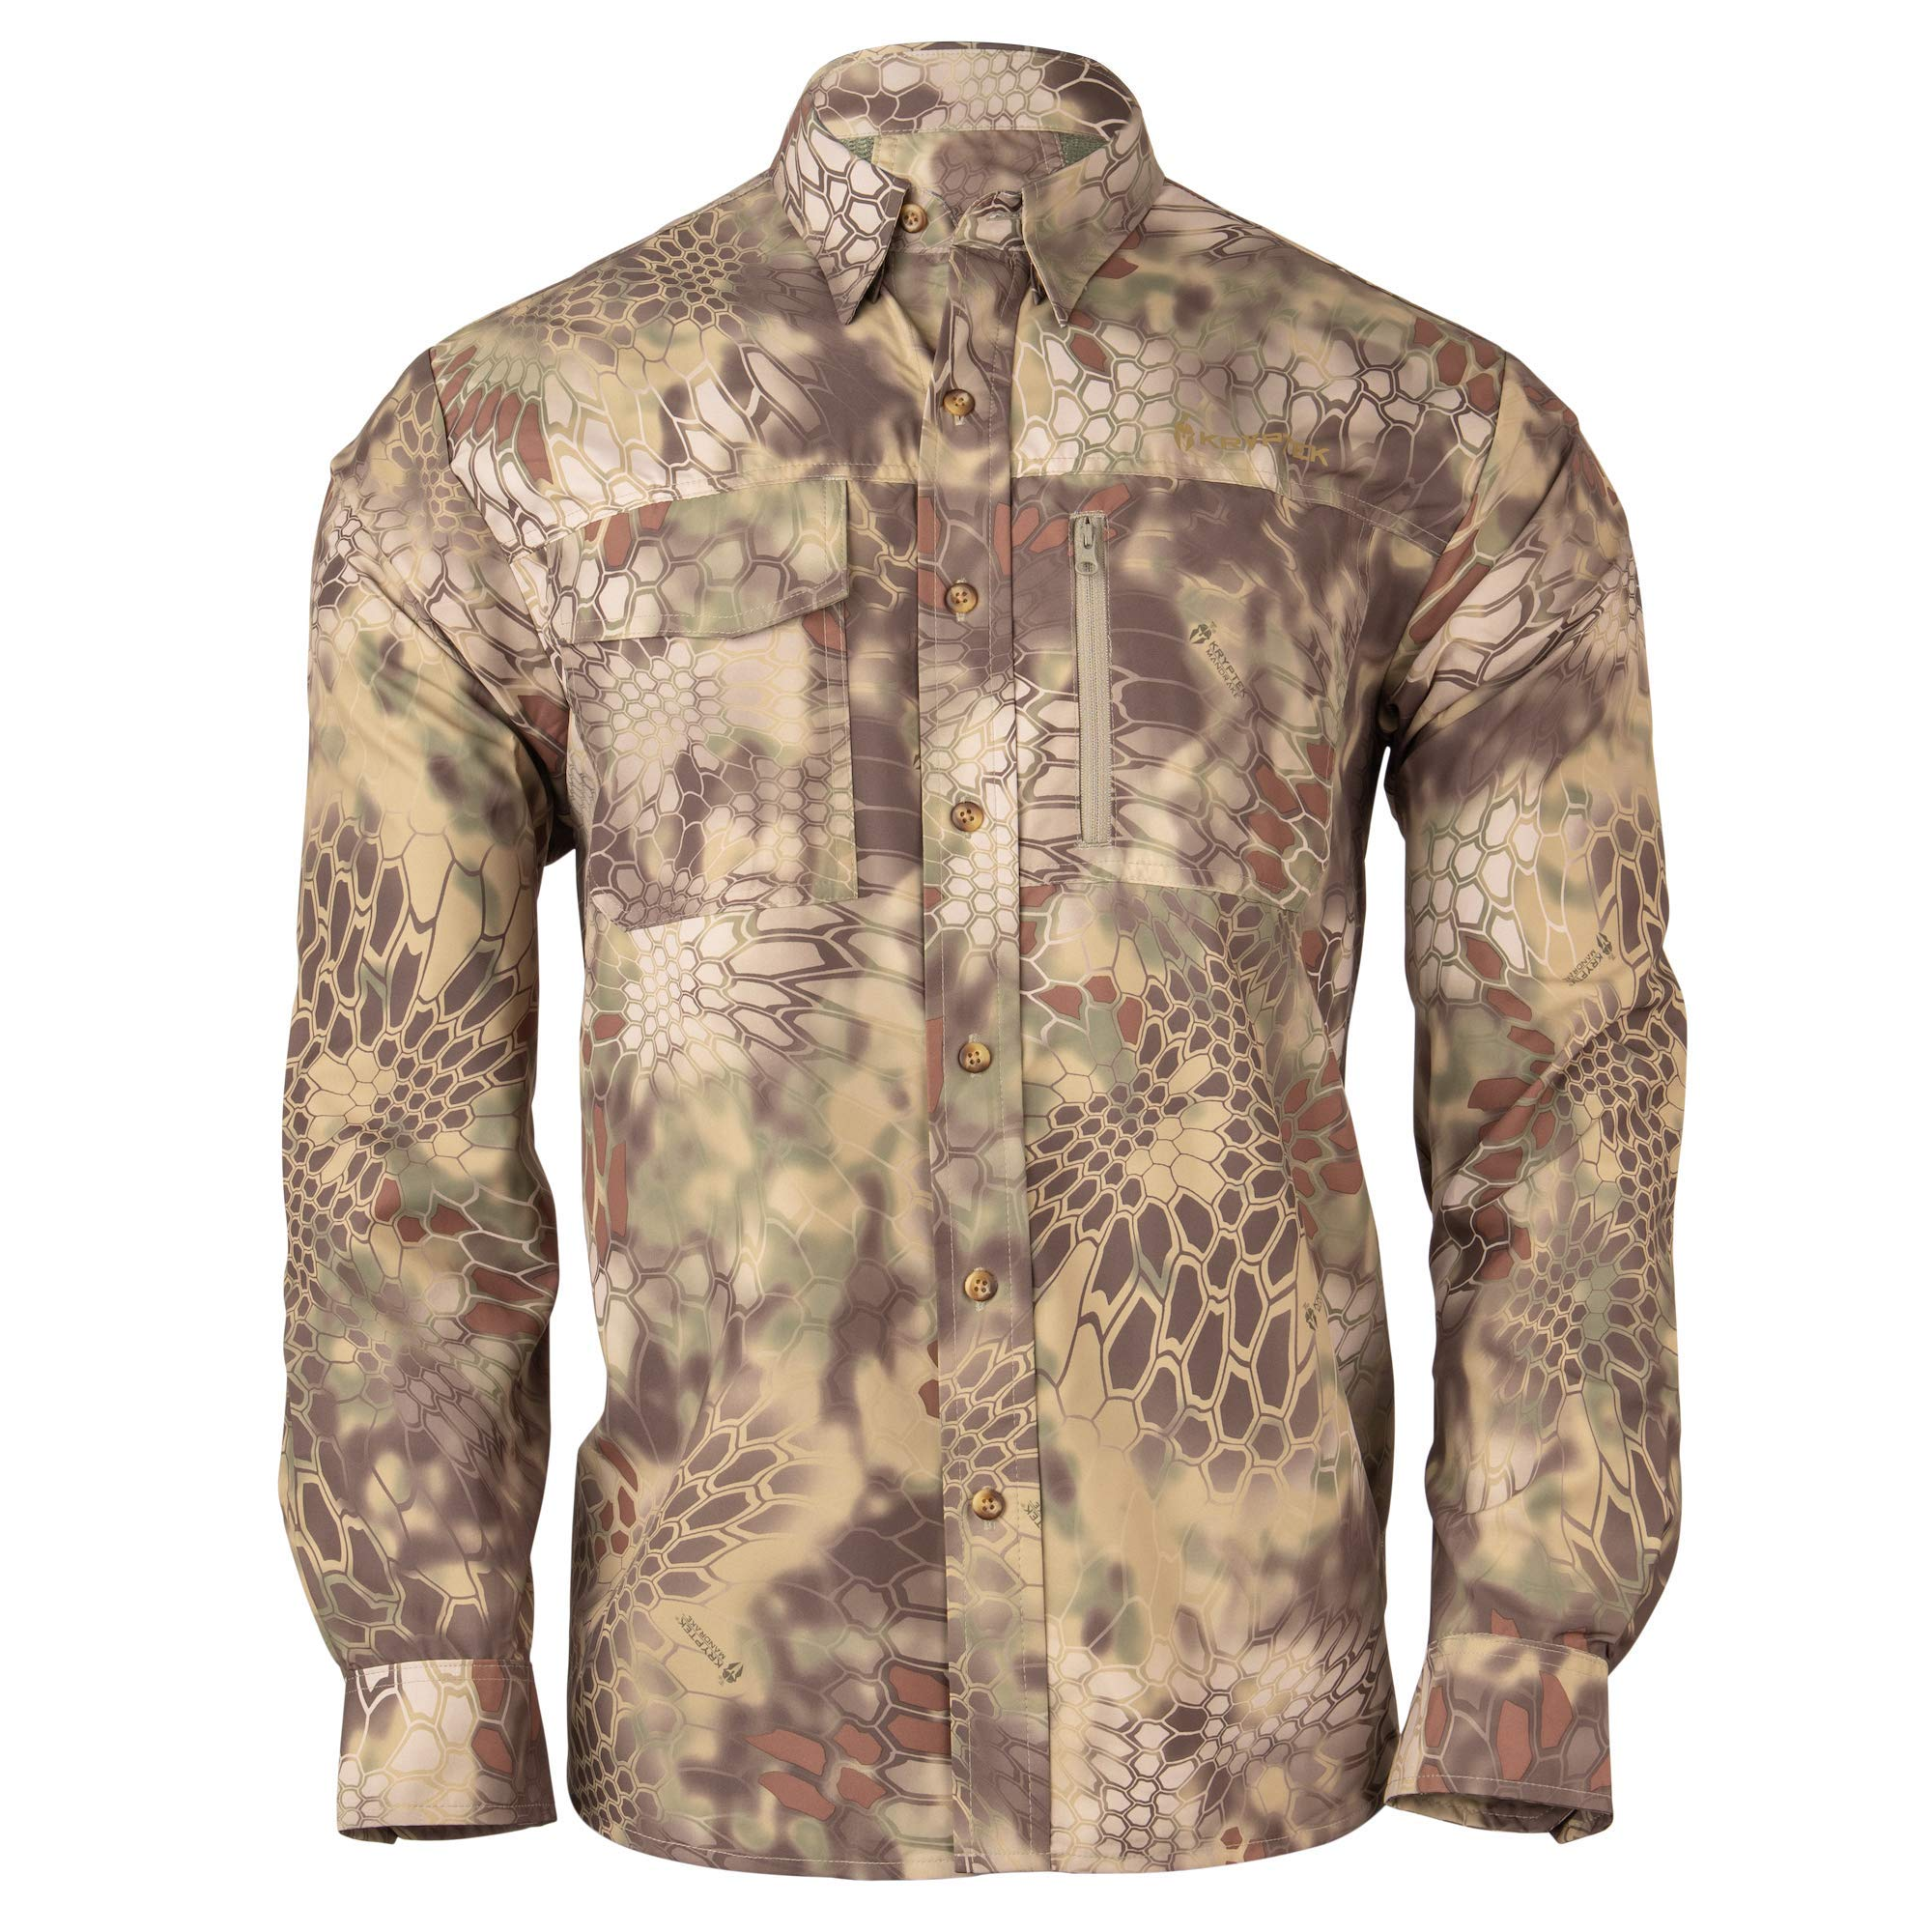 Kryptek Adventure 3 Long Sleeve Camo Hunting Shirt (Valhalla Collection), Mandrake, L by Kryptek